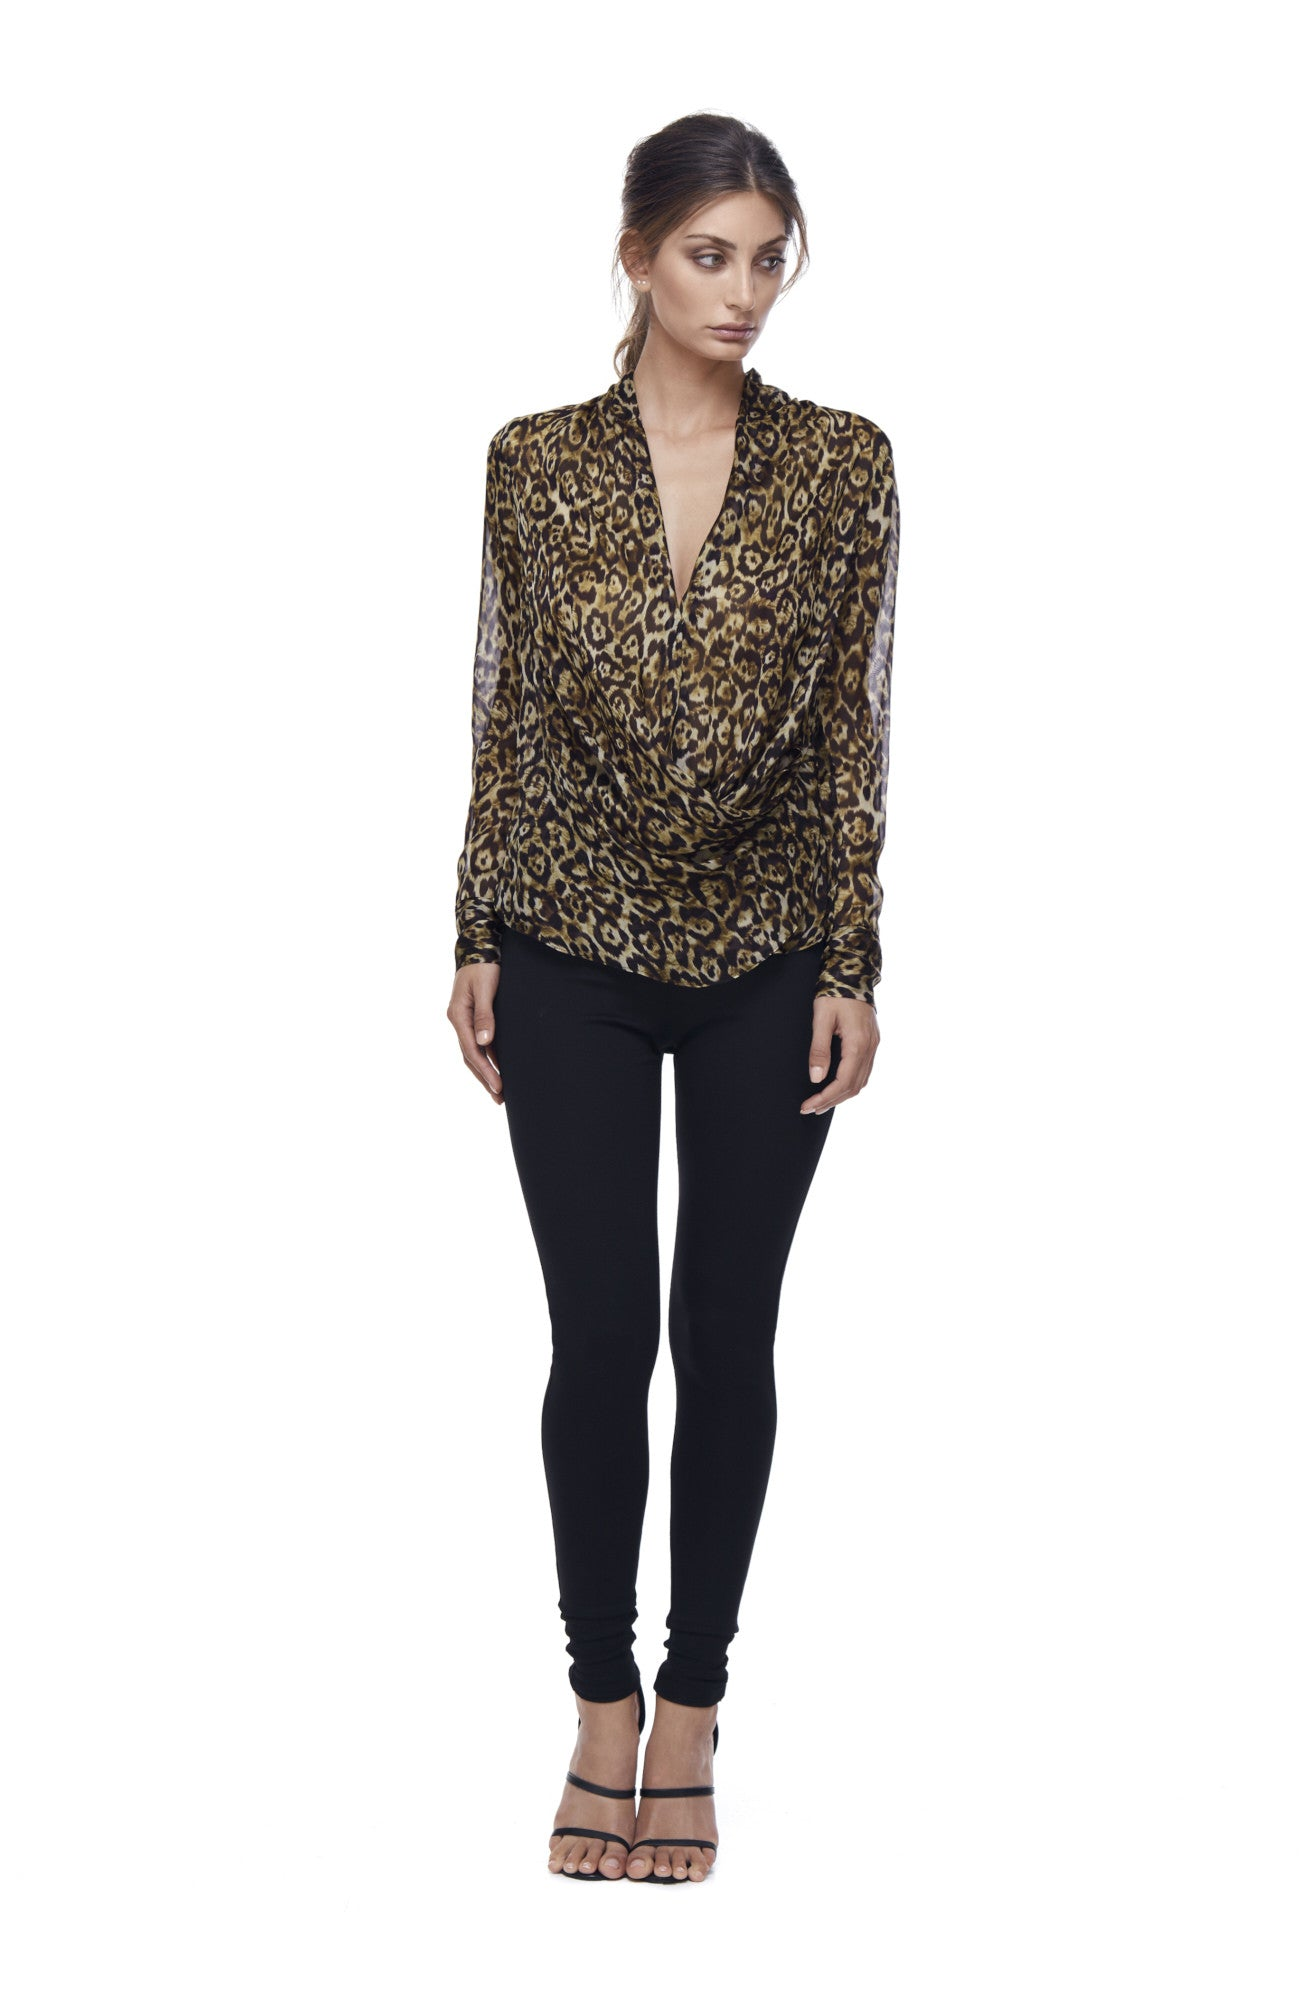 Queen of the Jungle Silk Cowl Blouse - Leopard